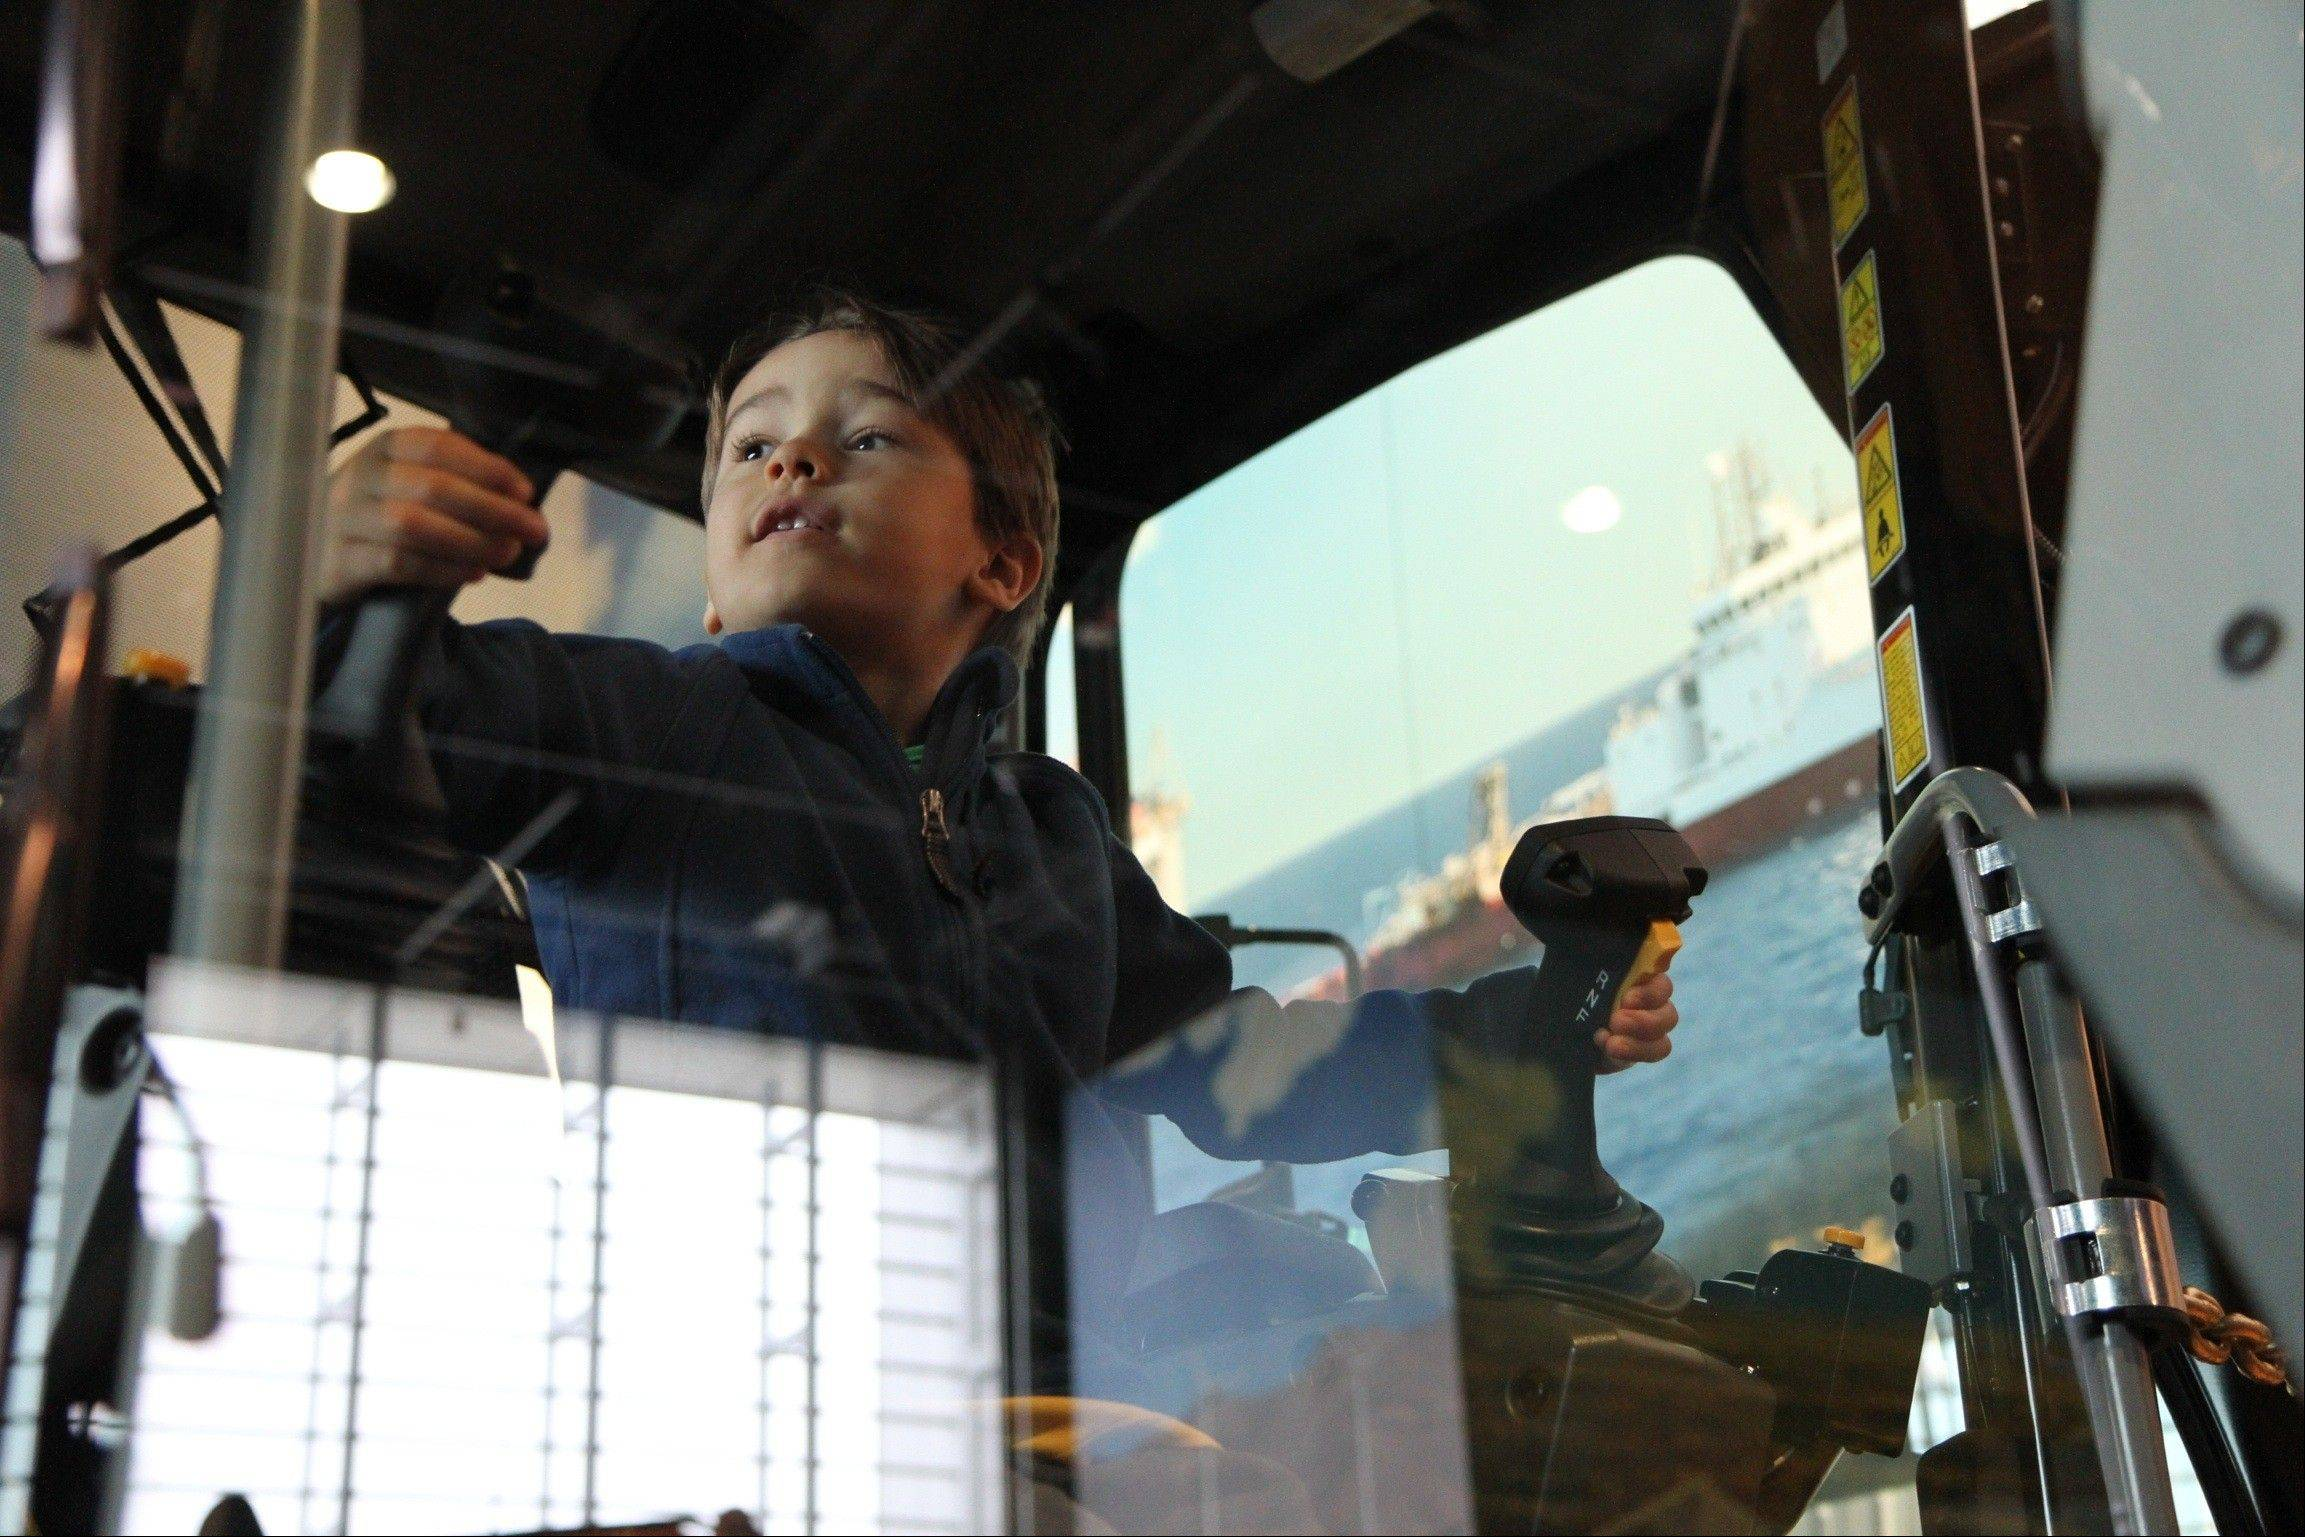 A boy tests equipment at the Caterpillar Visitors Center in Peoria.